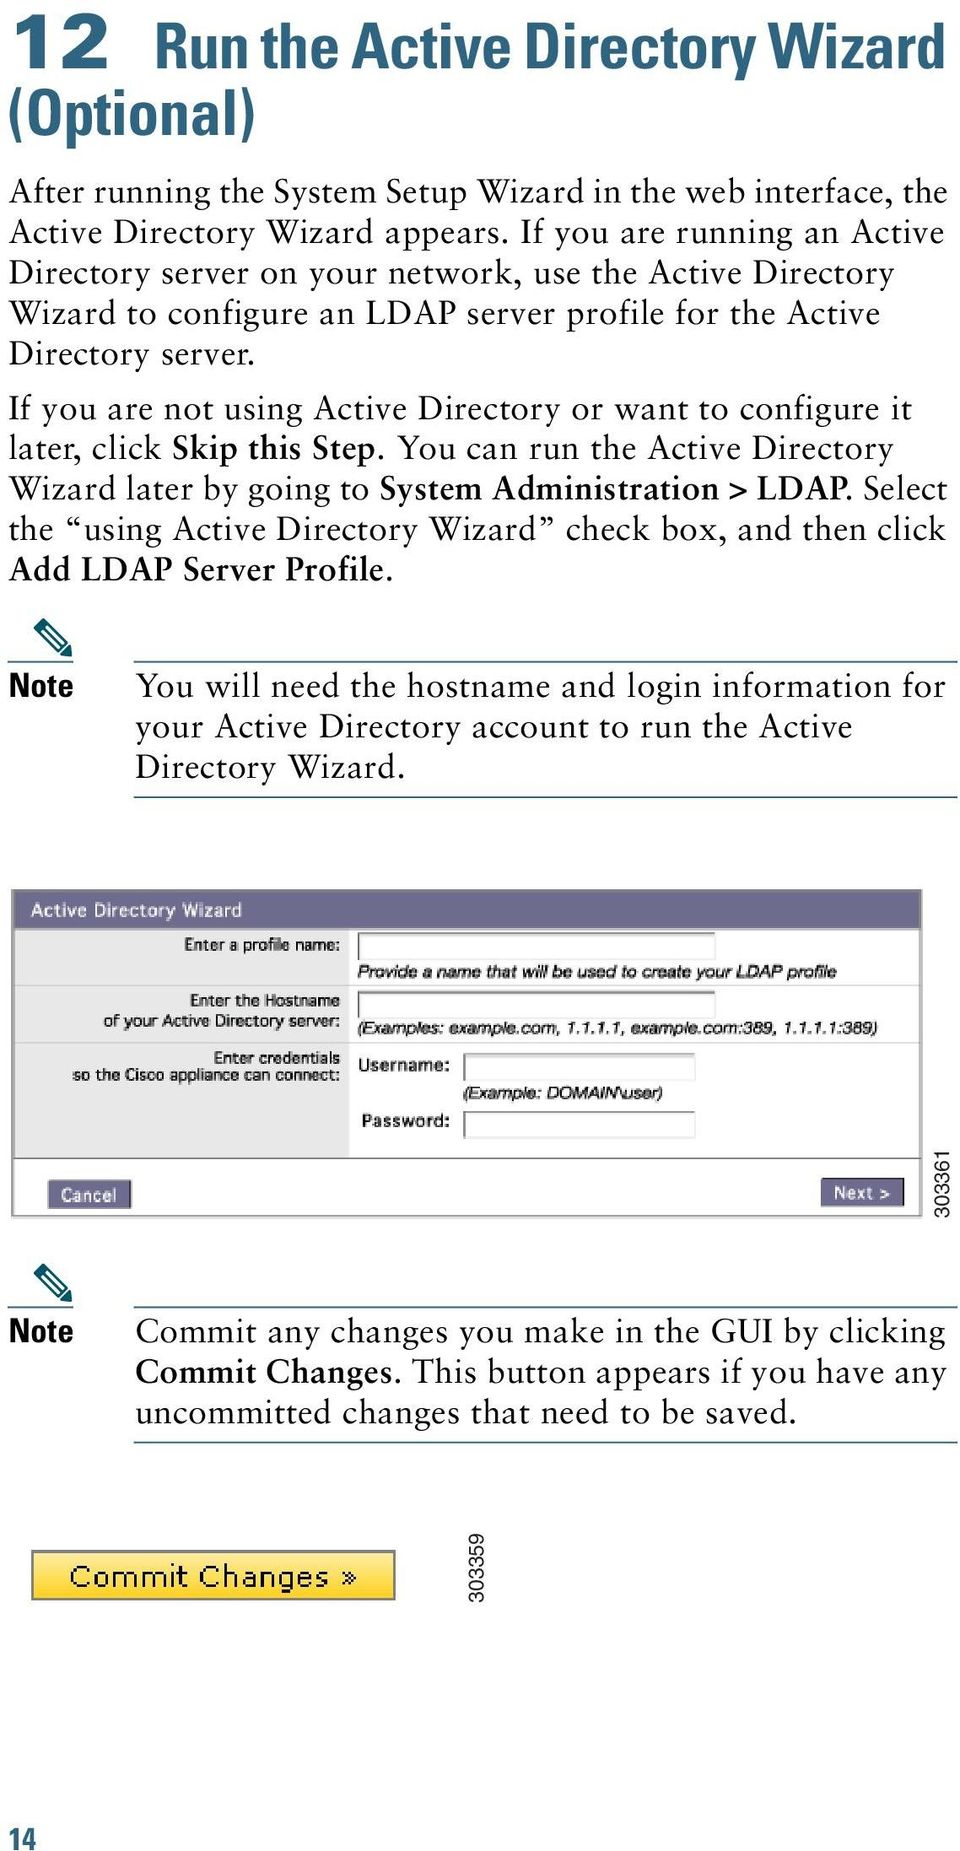 If you are not using Active Directory or want to configure it later, click Skip this Step. You can run the Active Directory Wizard later by going to System Administration > LDAP.